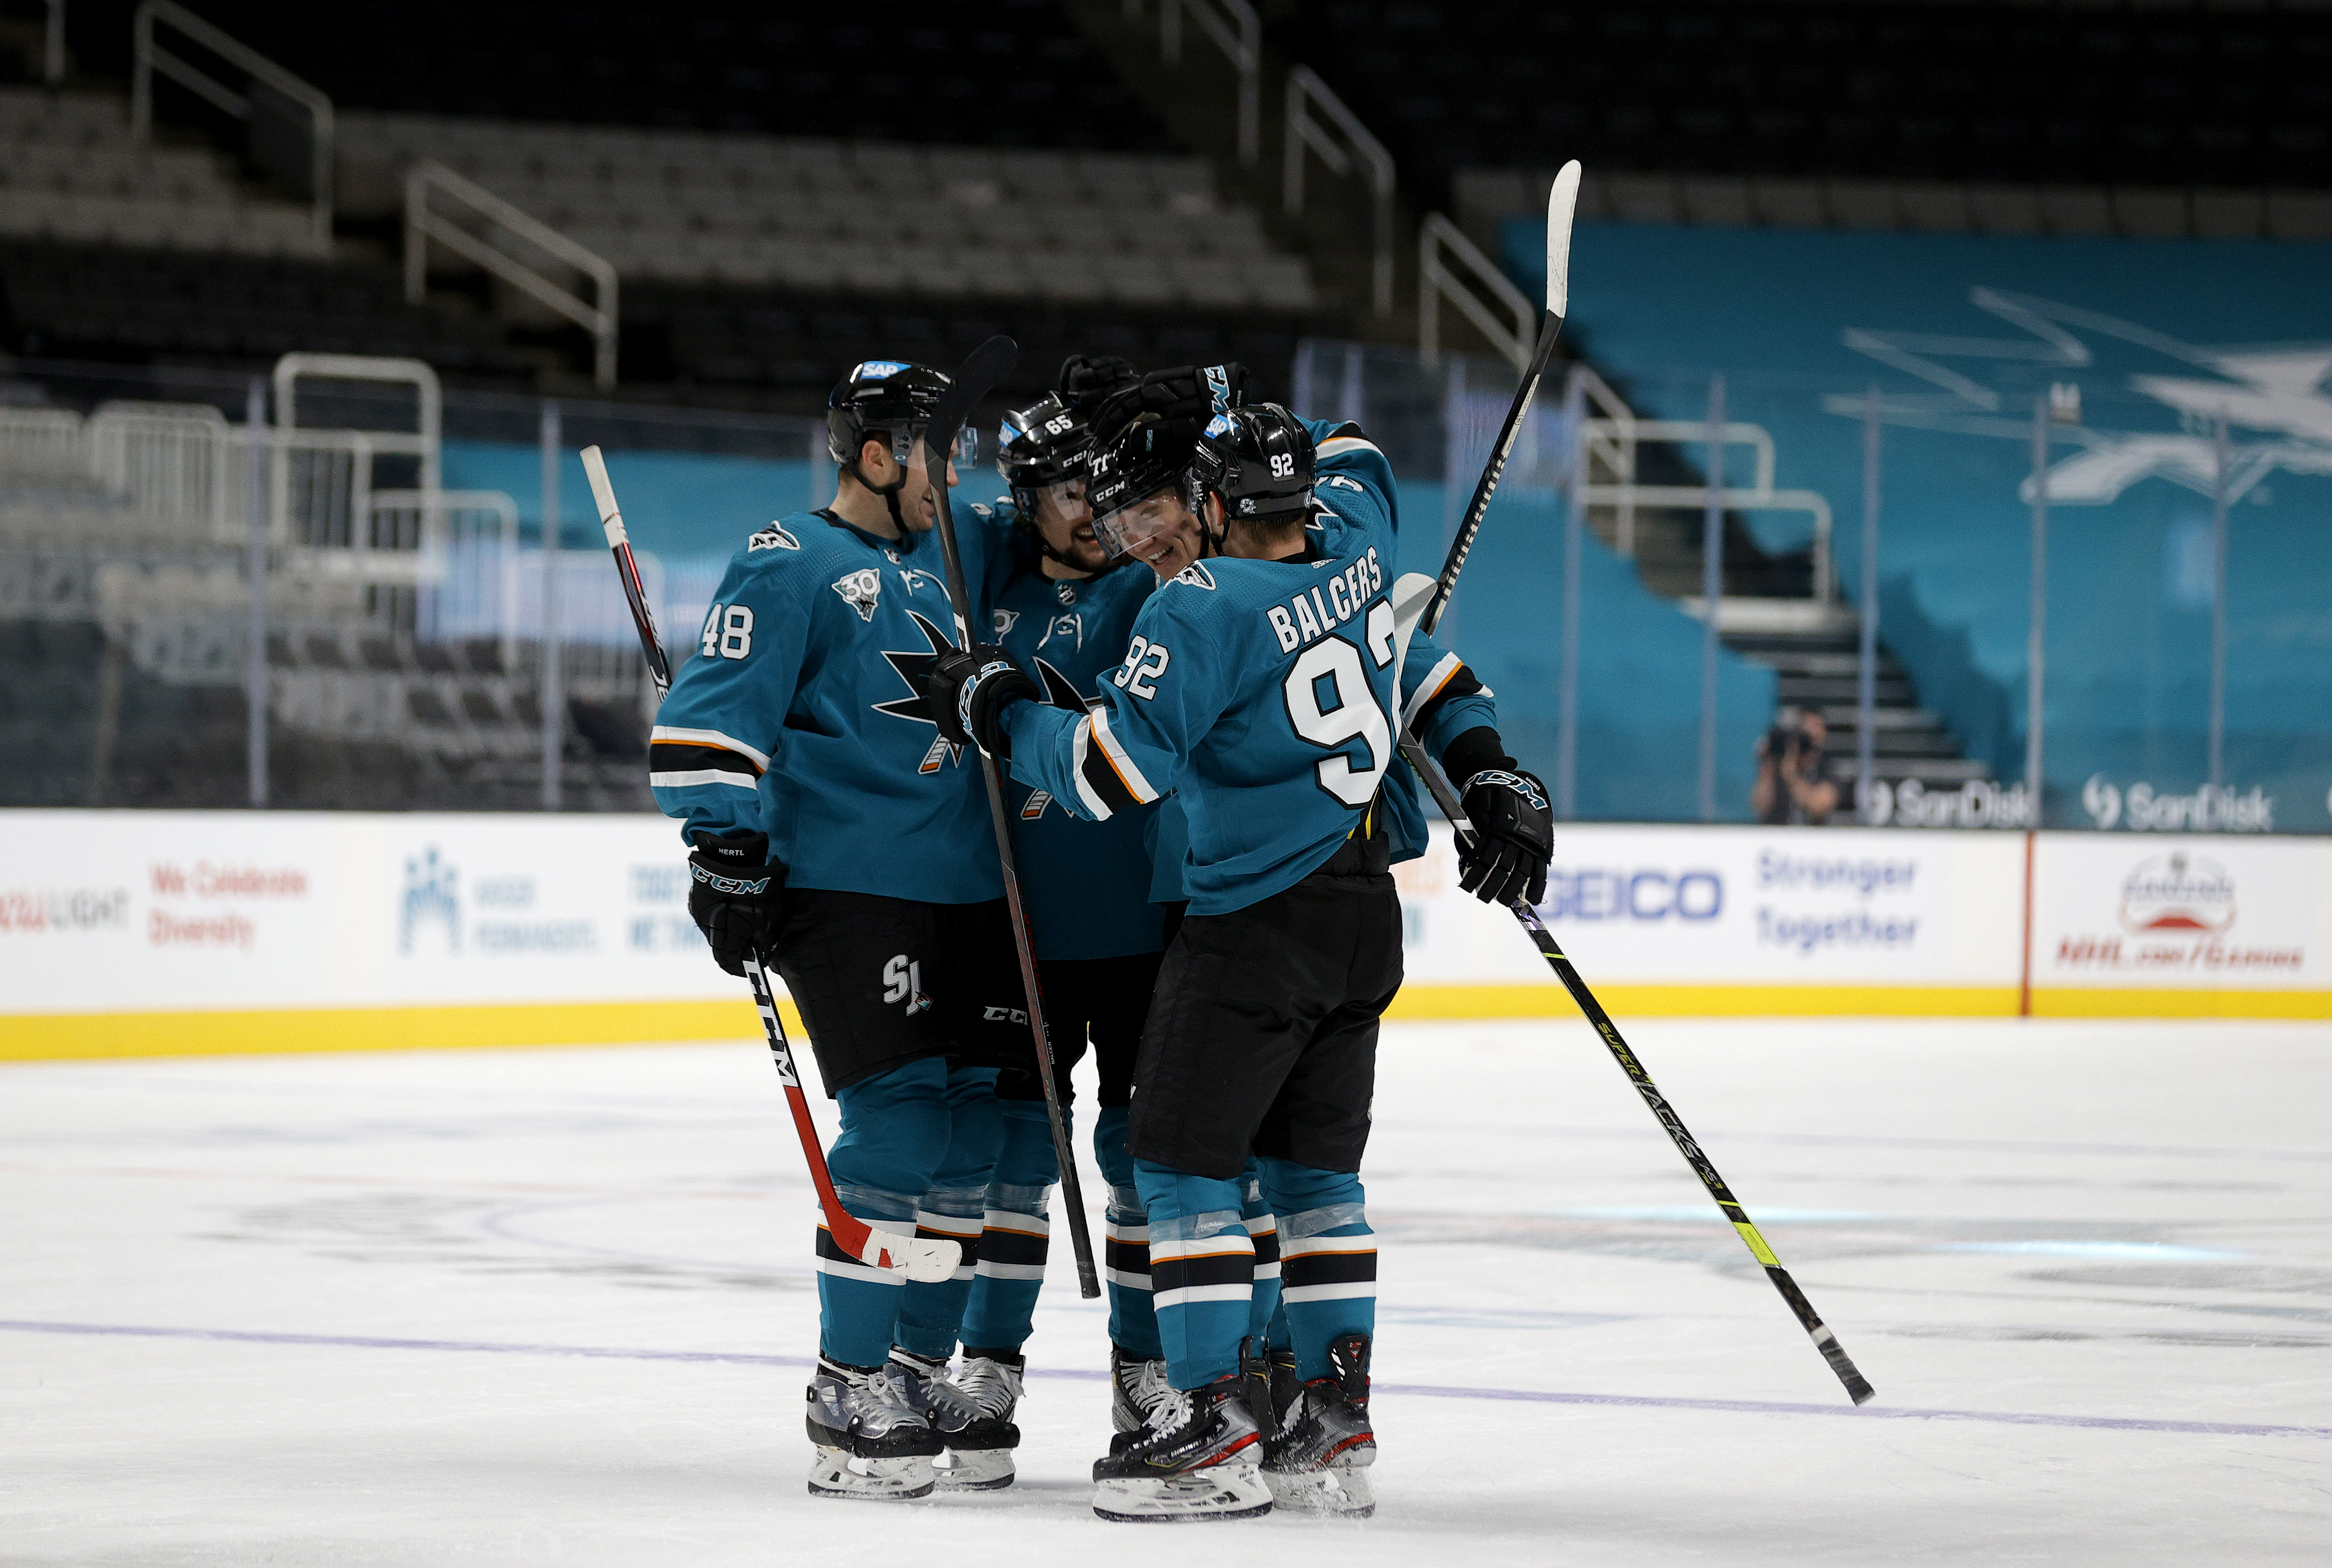 Nikolai Knyzhov #71 of the San Jose Sharks is congratulated by teammates after he scored a goal against the Minnesota Wild in the third period at SAP Center on March 31, 2021 in San Jose, California.